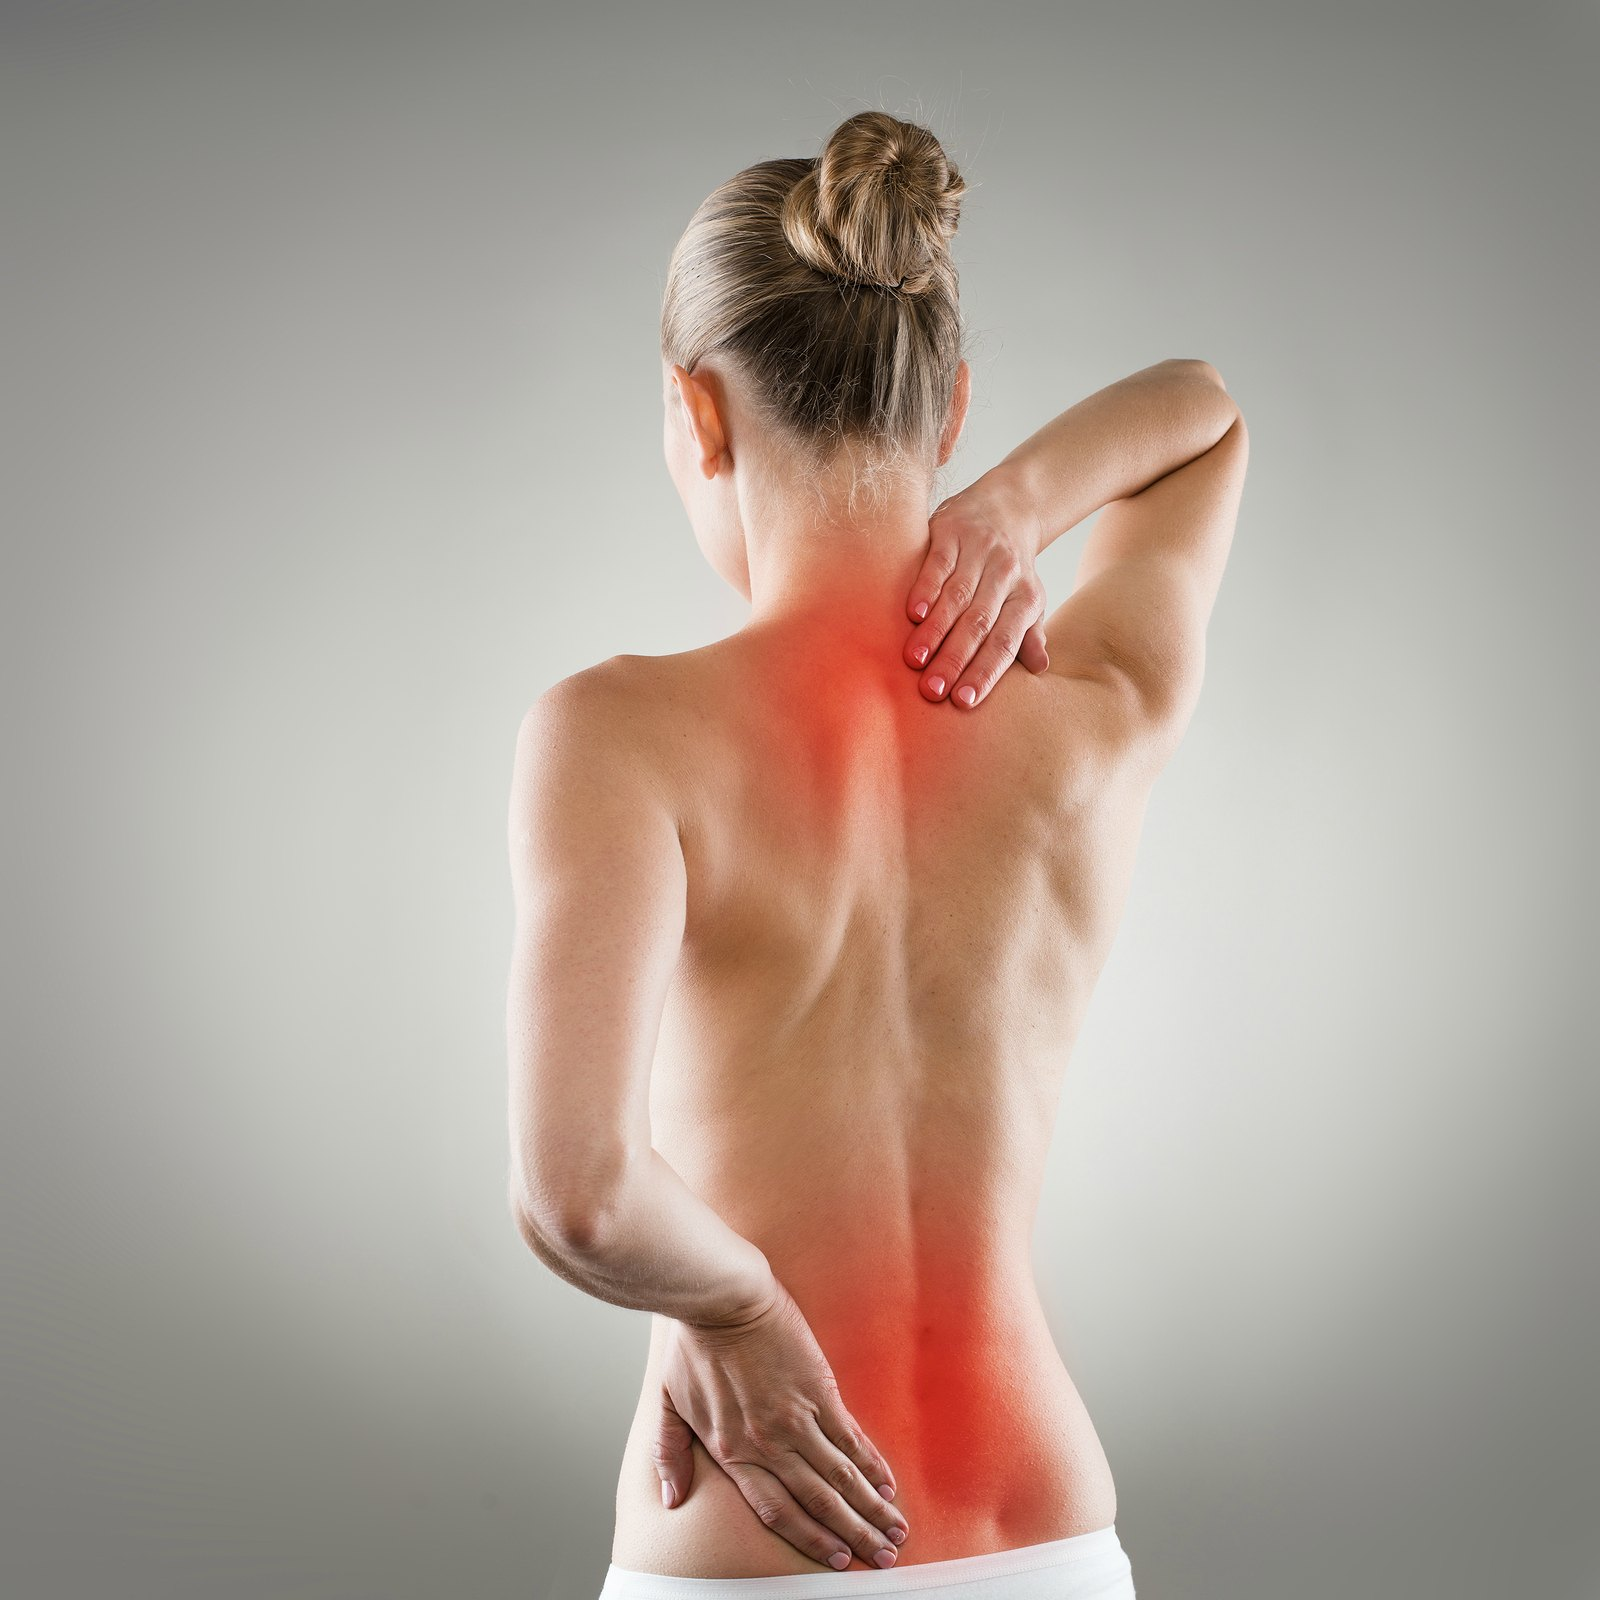 Suffering from back pain or other sore joints? Check out these top movements you can do to get the body moving.